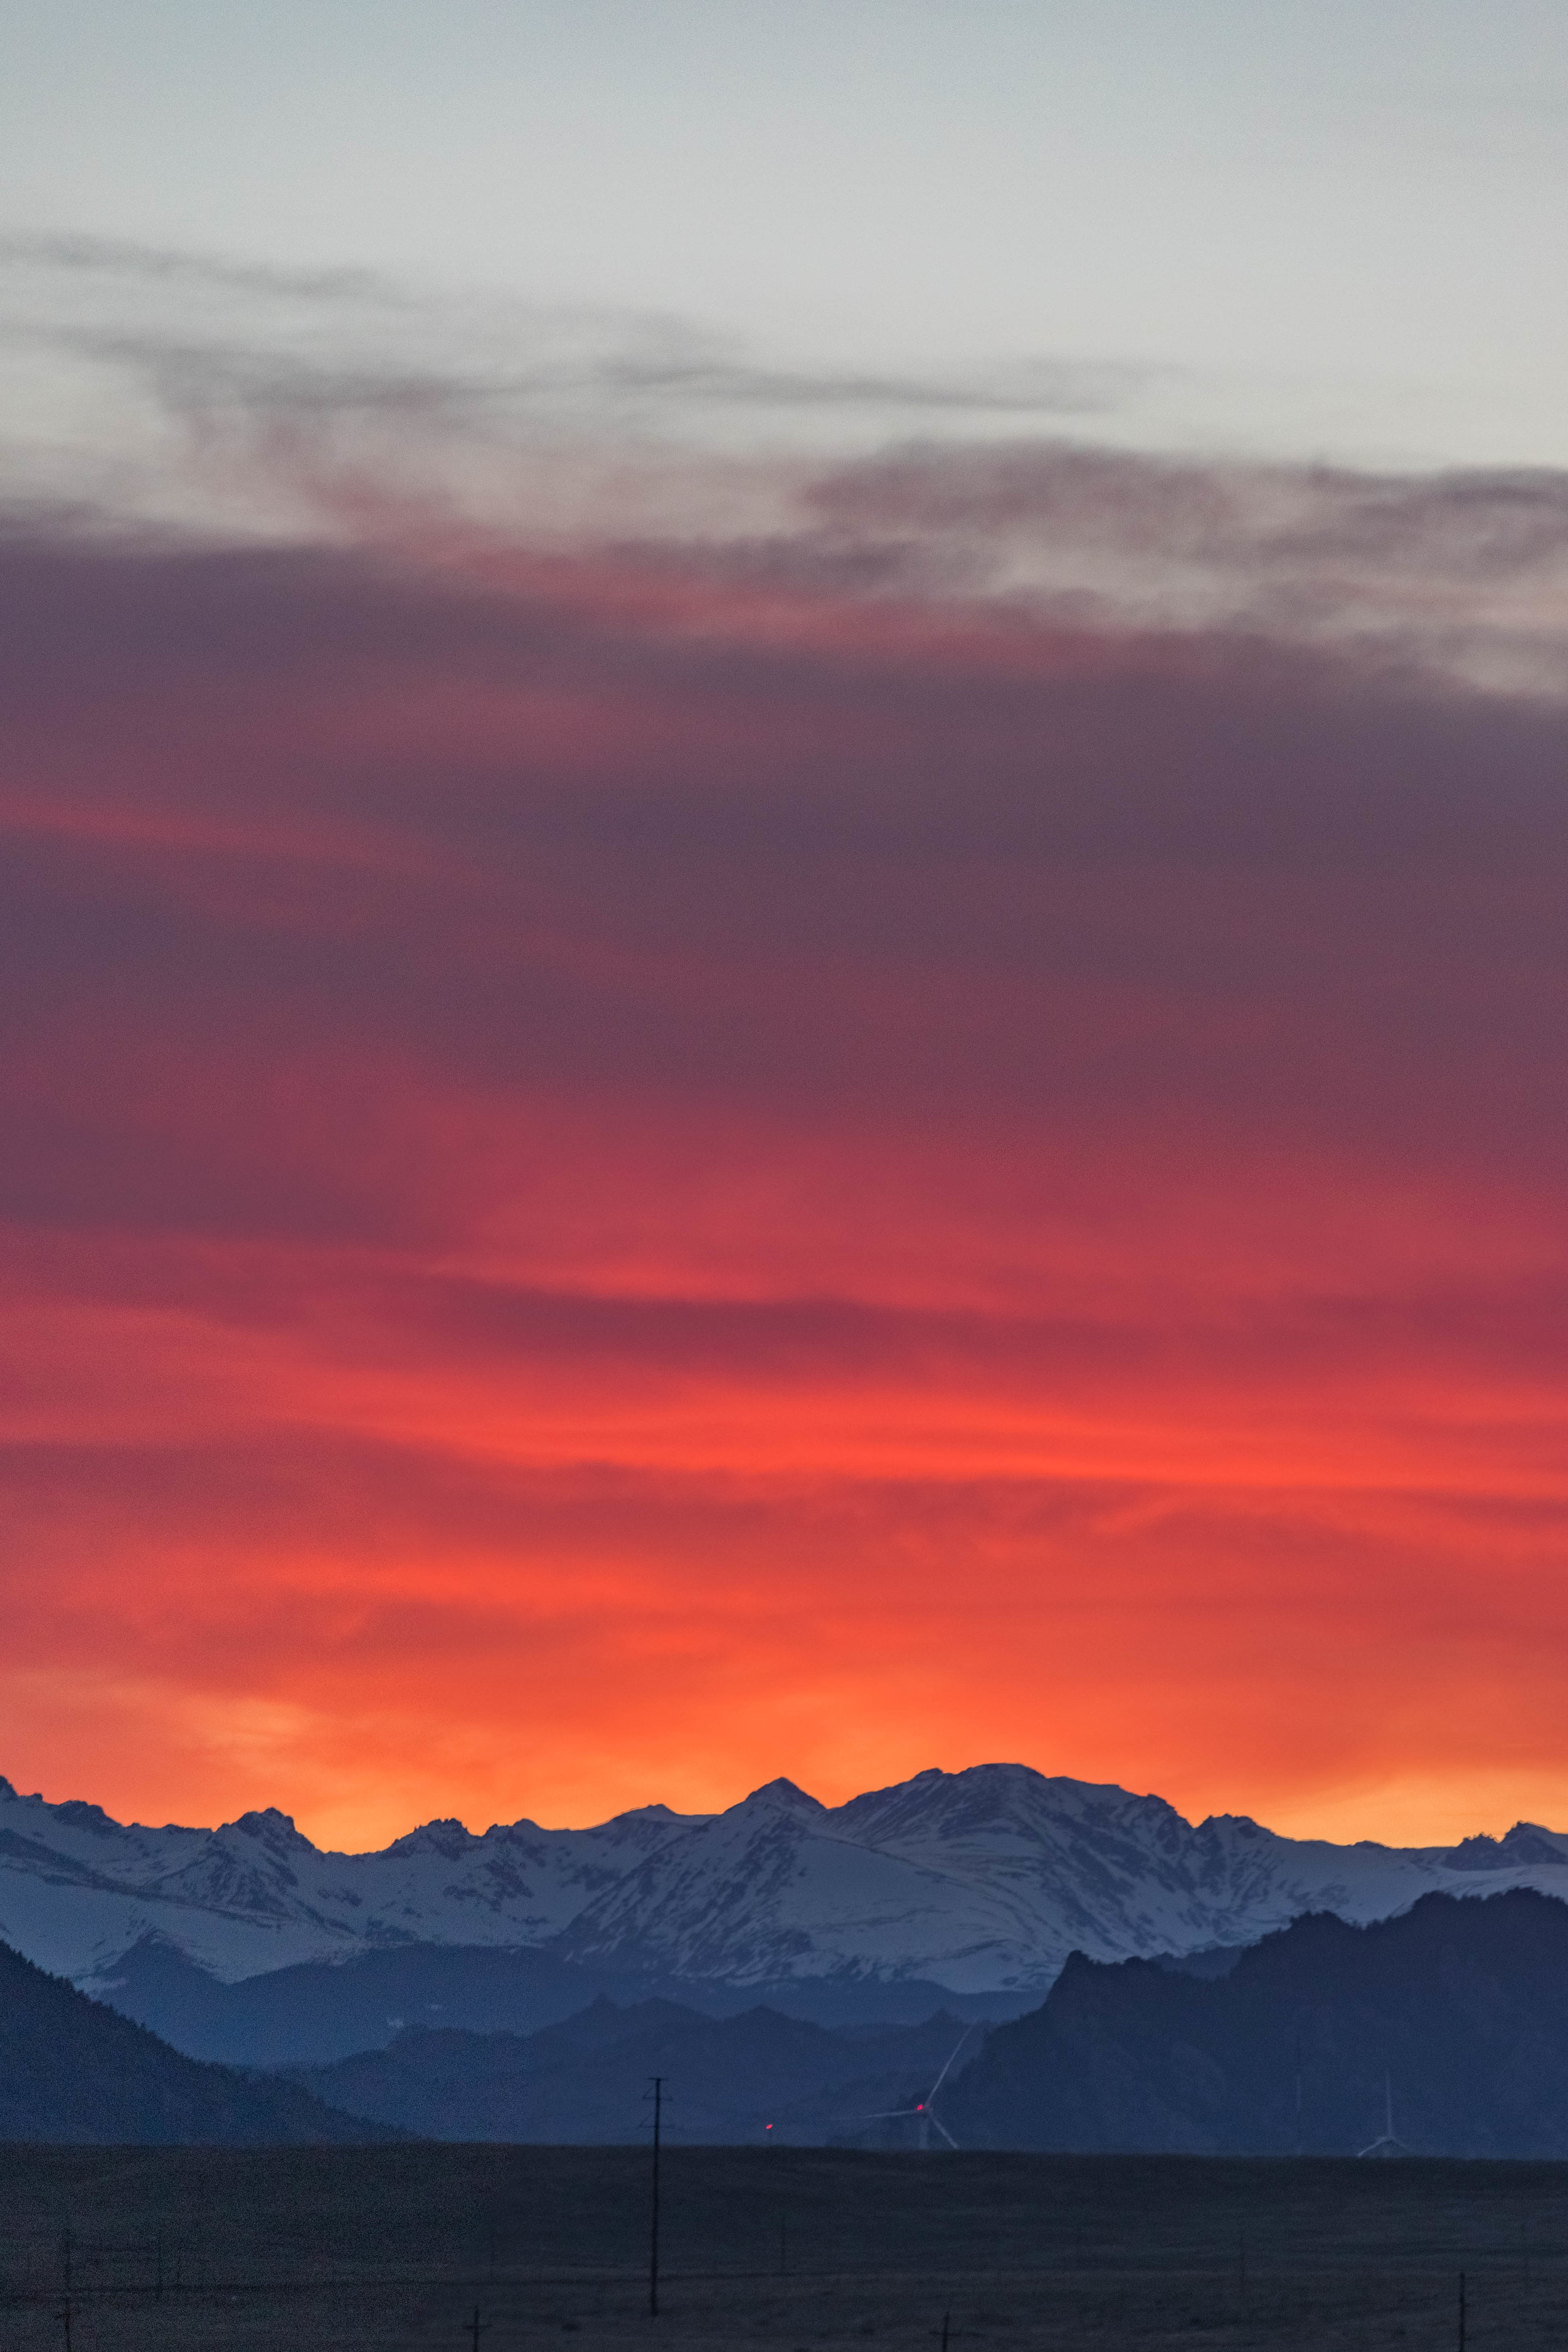 rocky mountain sunset - westminster, colorado   from US$15